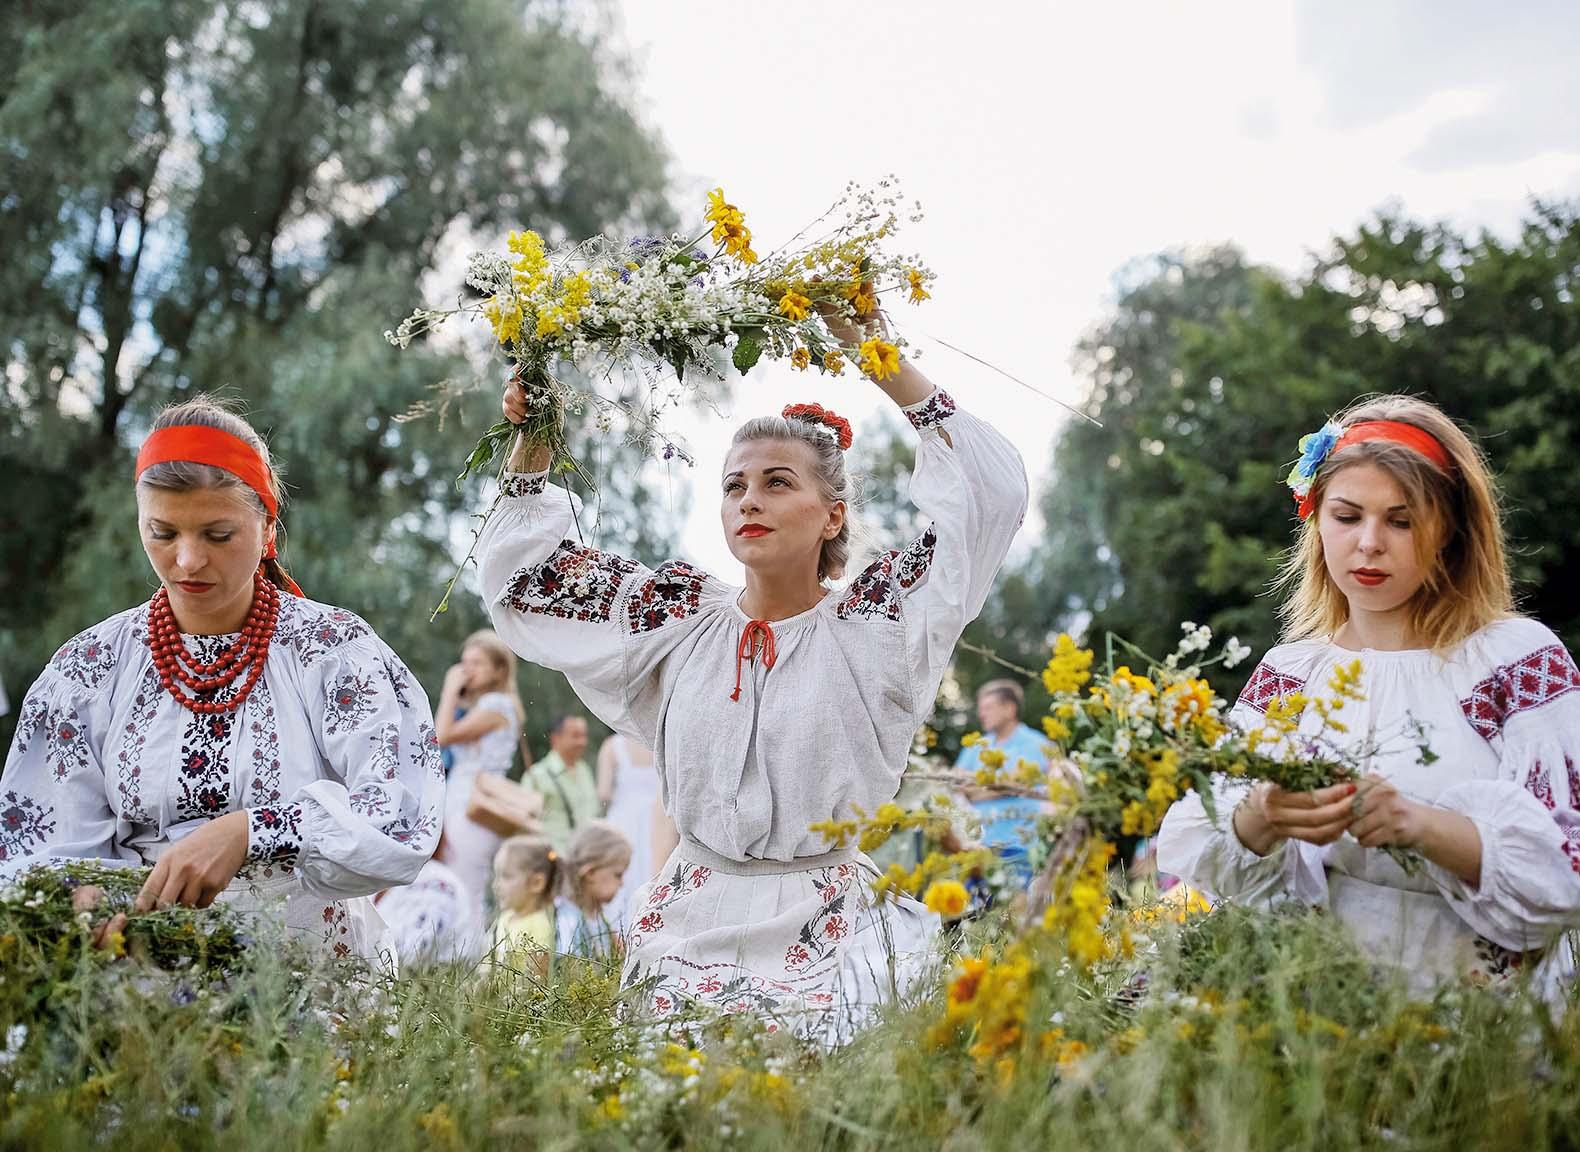 Women make wreaths during a celebration on the traditional Ivana Kupala (Ivan the Bather) holiday, the ancient tradition, originating from pagan times, is usually marked with grand overnight festivities during which people sing and dance around campfires, believing it will purge them of their sins and make them healthier, in Kiev, Ukraine, July 6, 2016.  REUTERS/Gleb Garanich - S1AETOBXEPAA